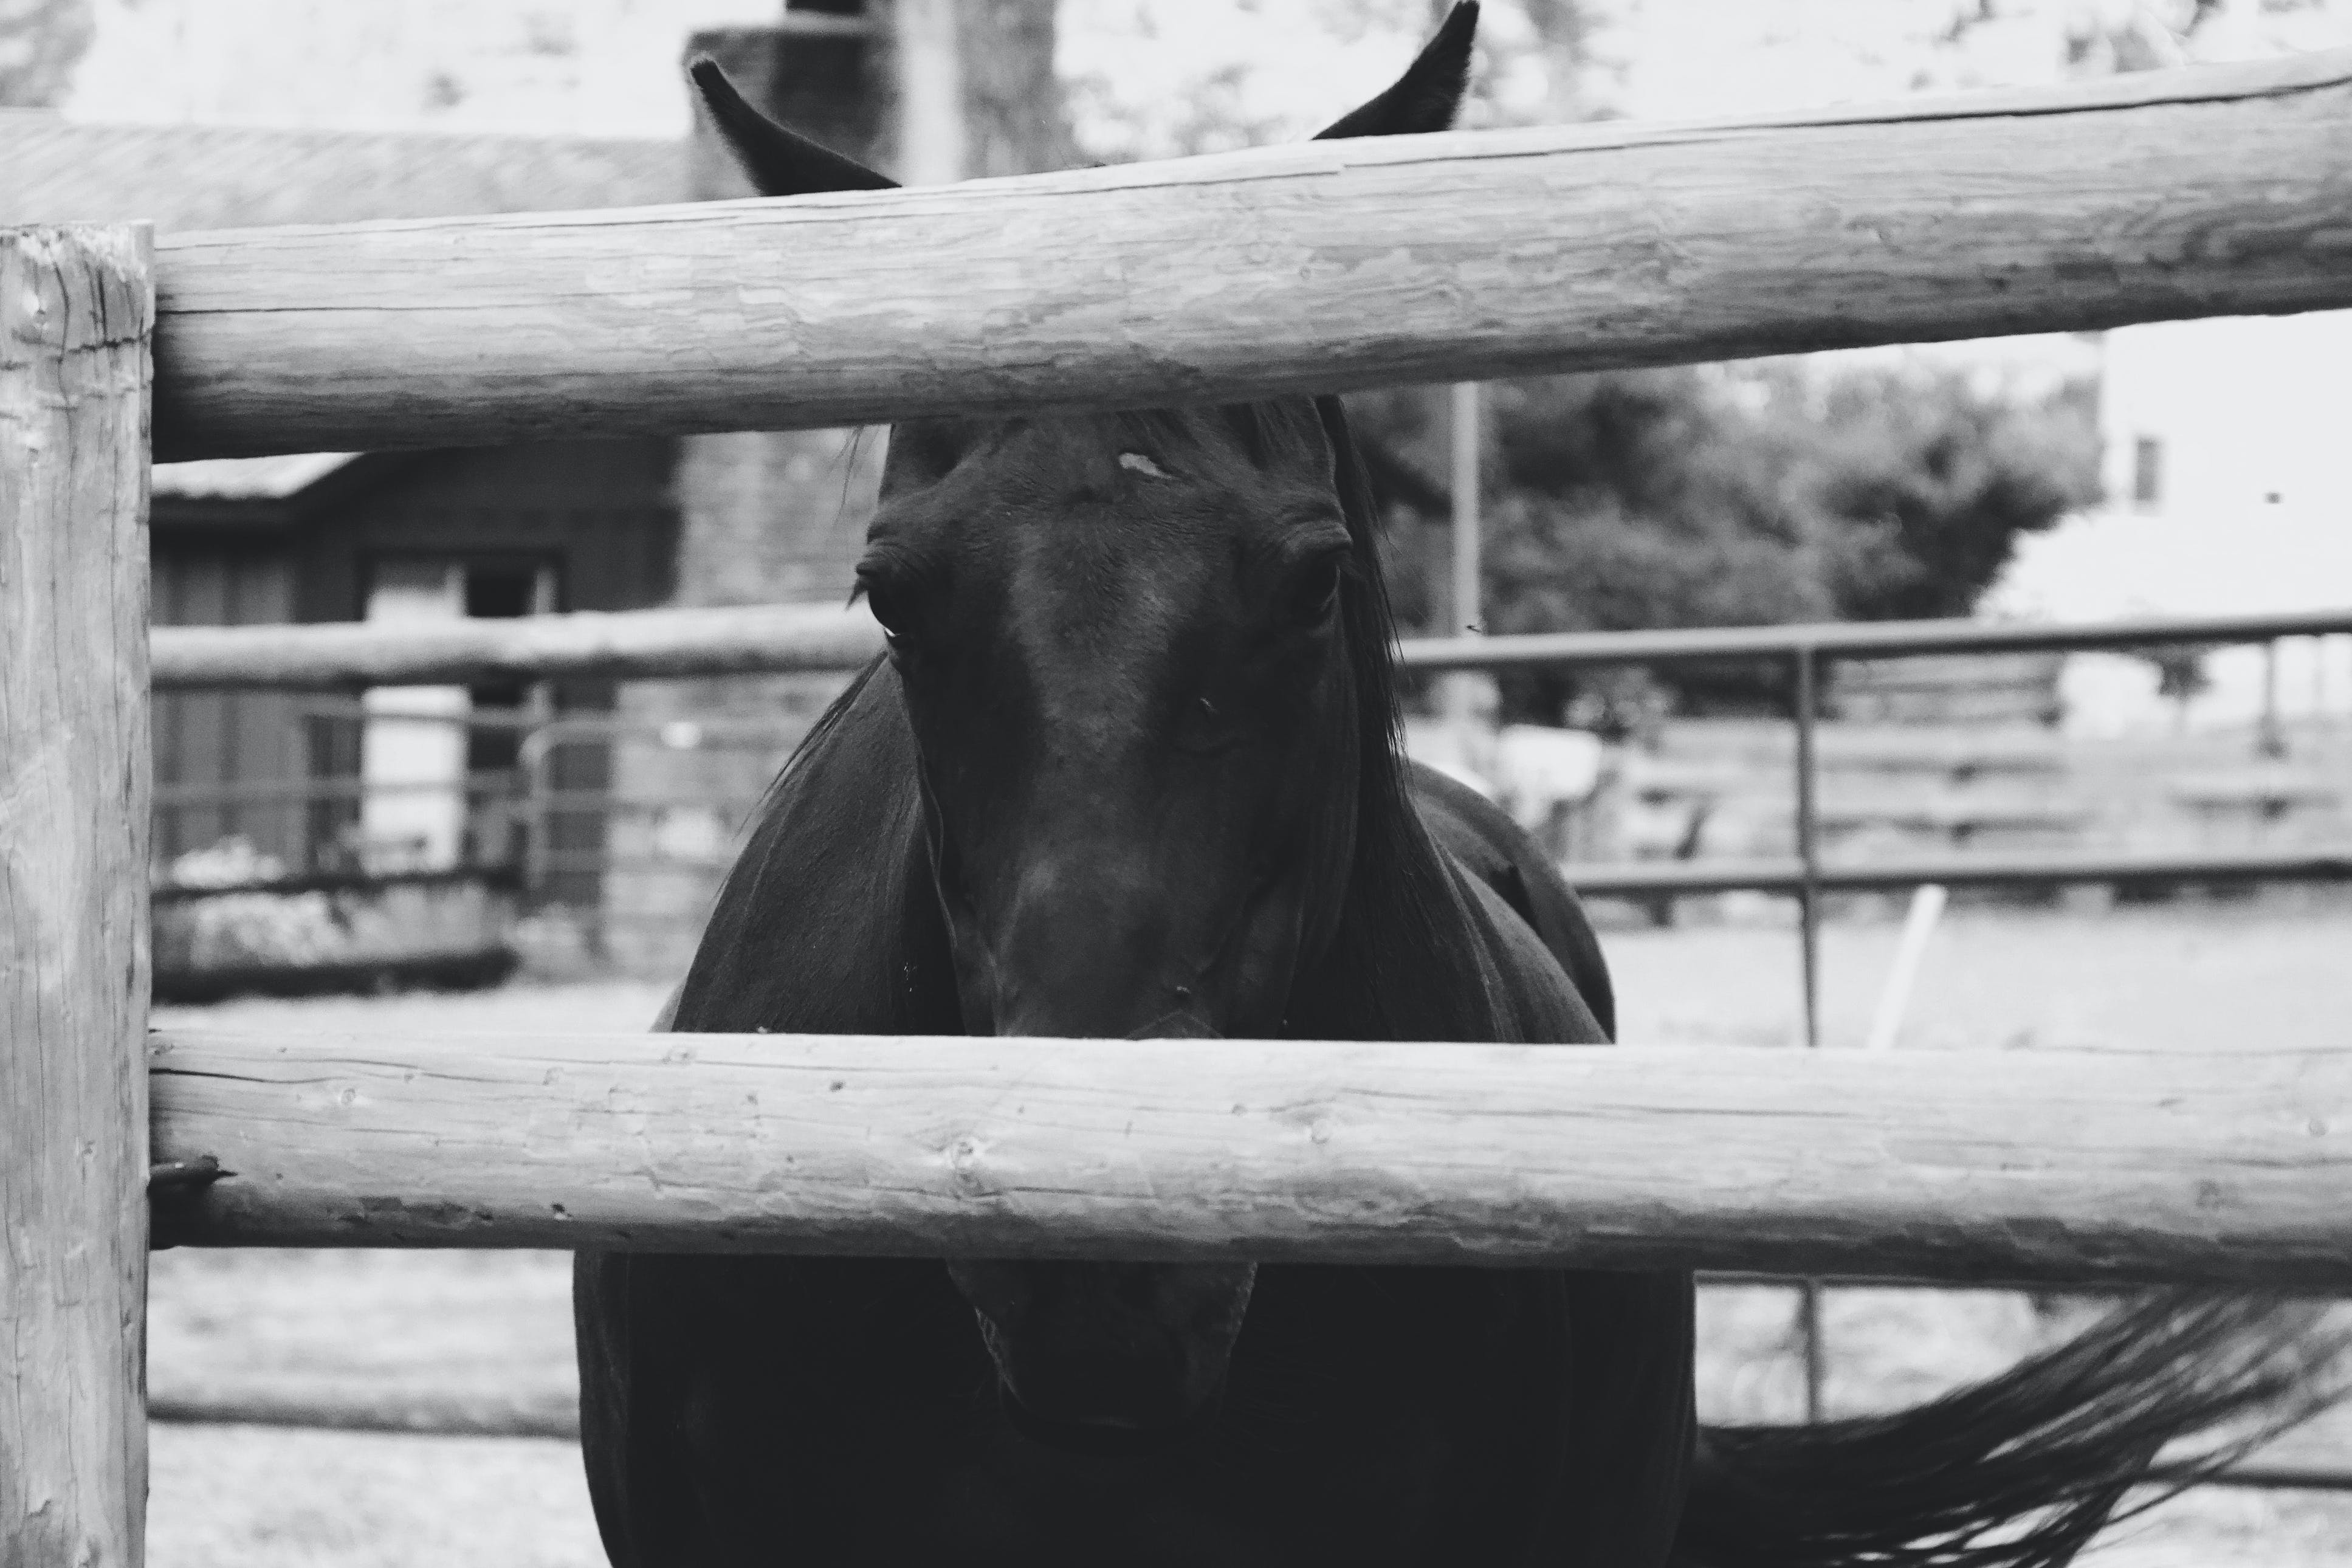 Monochrome Photo of a Horse